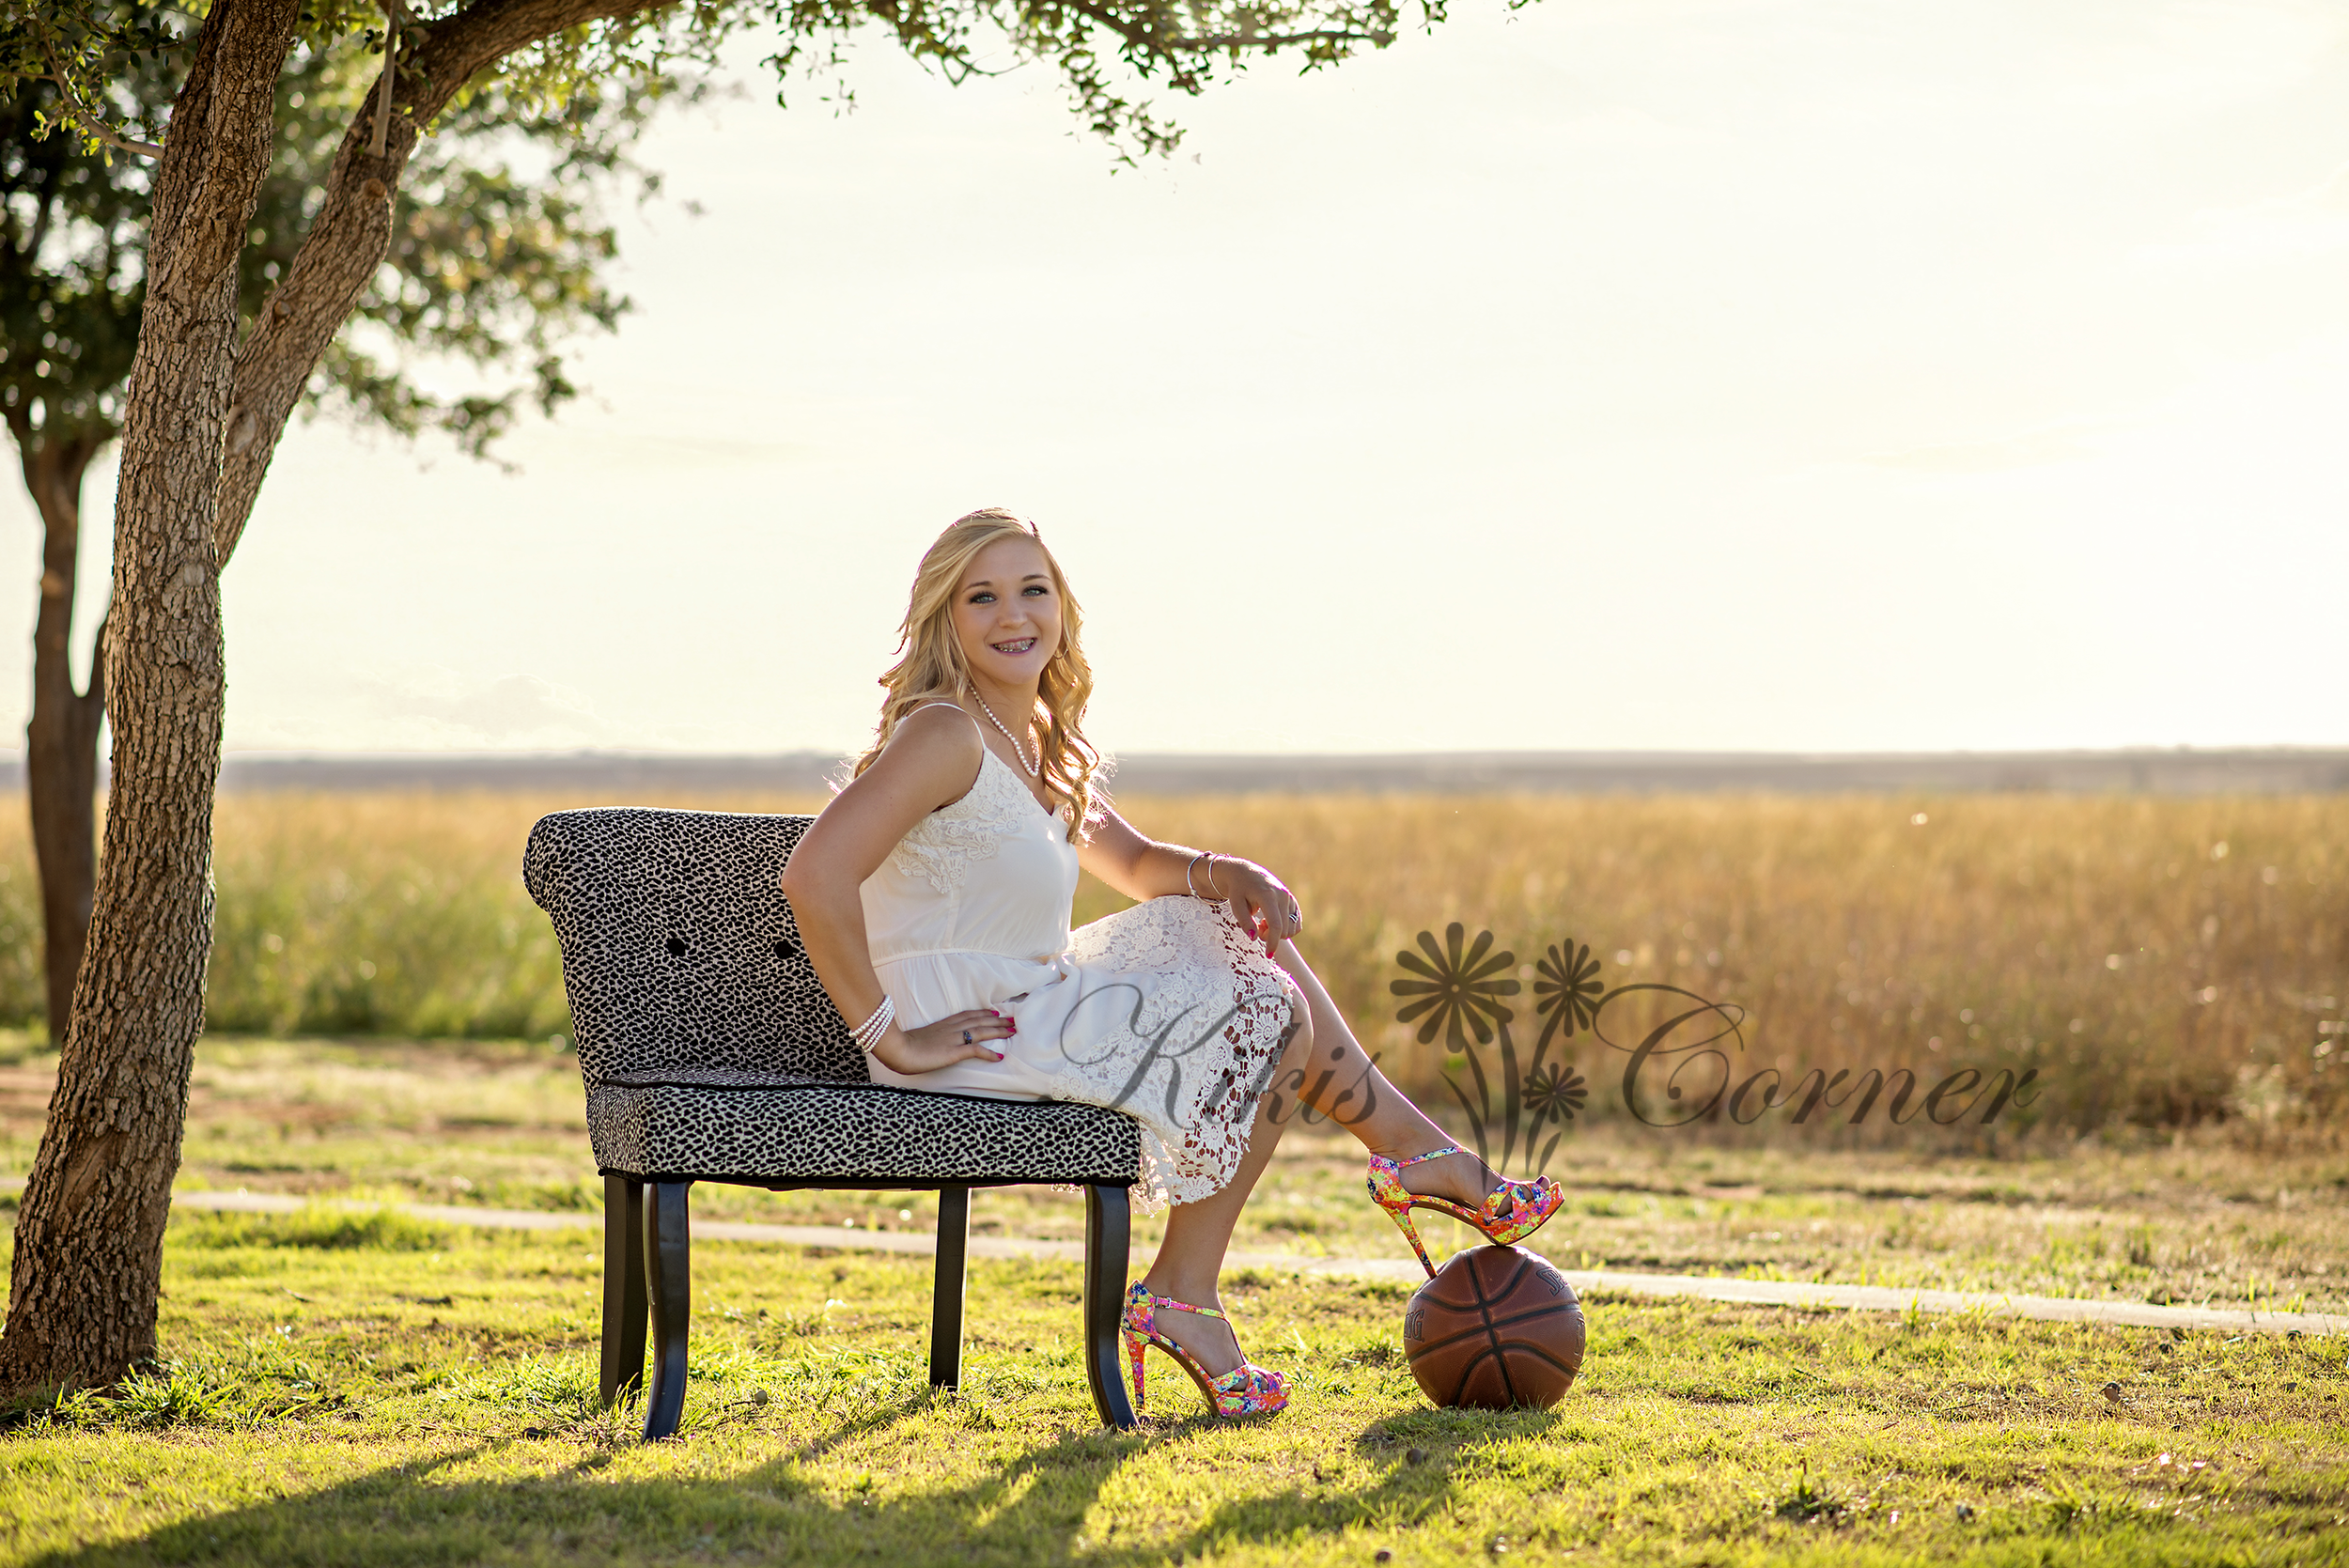 senior with basketball in field